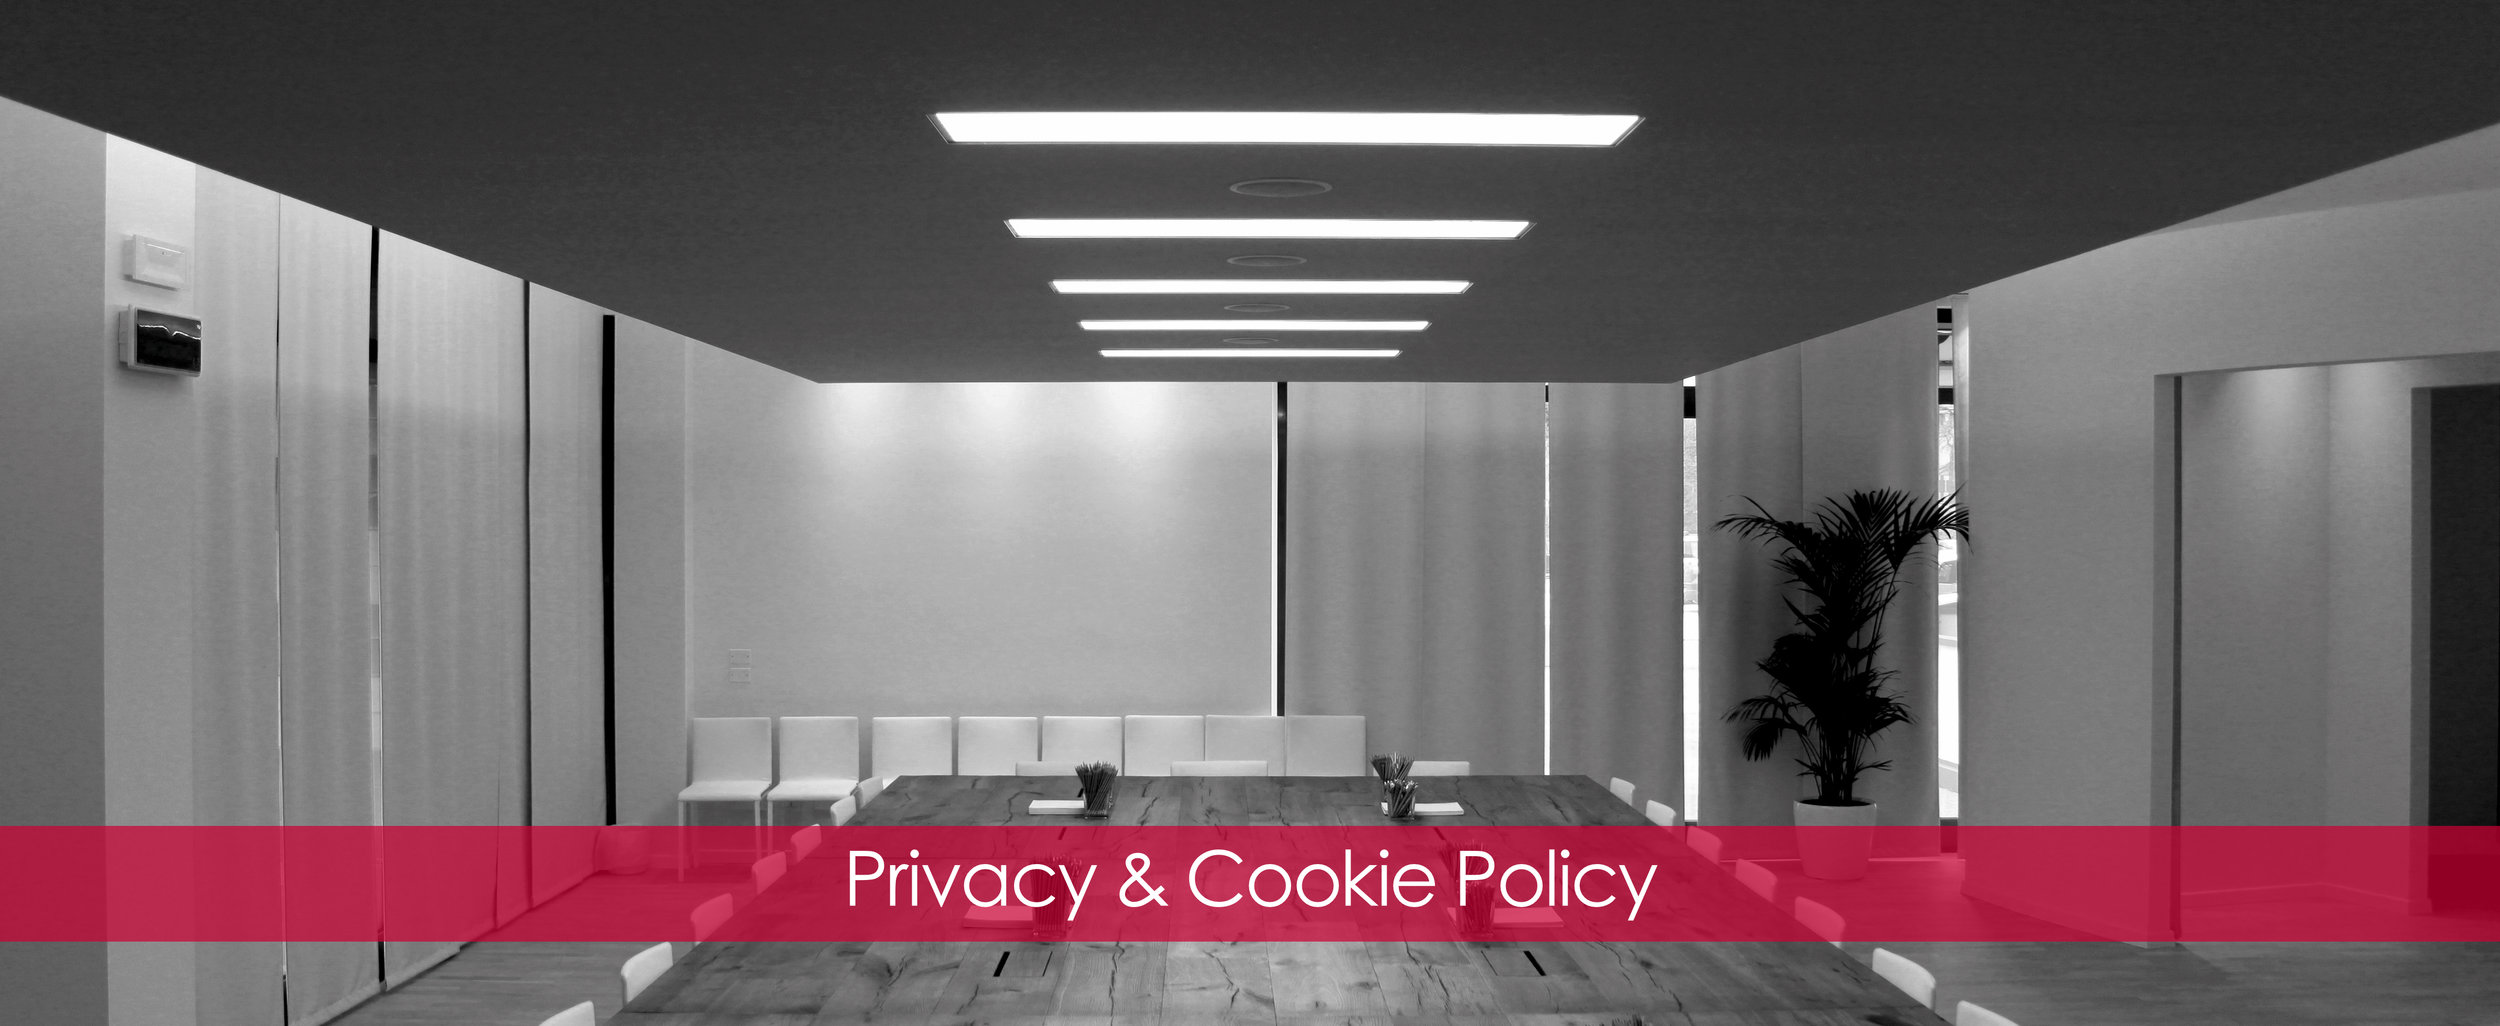 Privacy & Cookie Policy 2.jpg